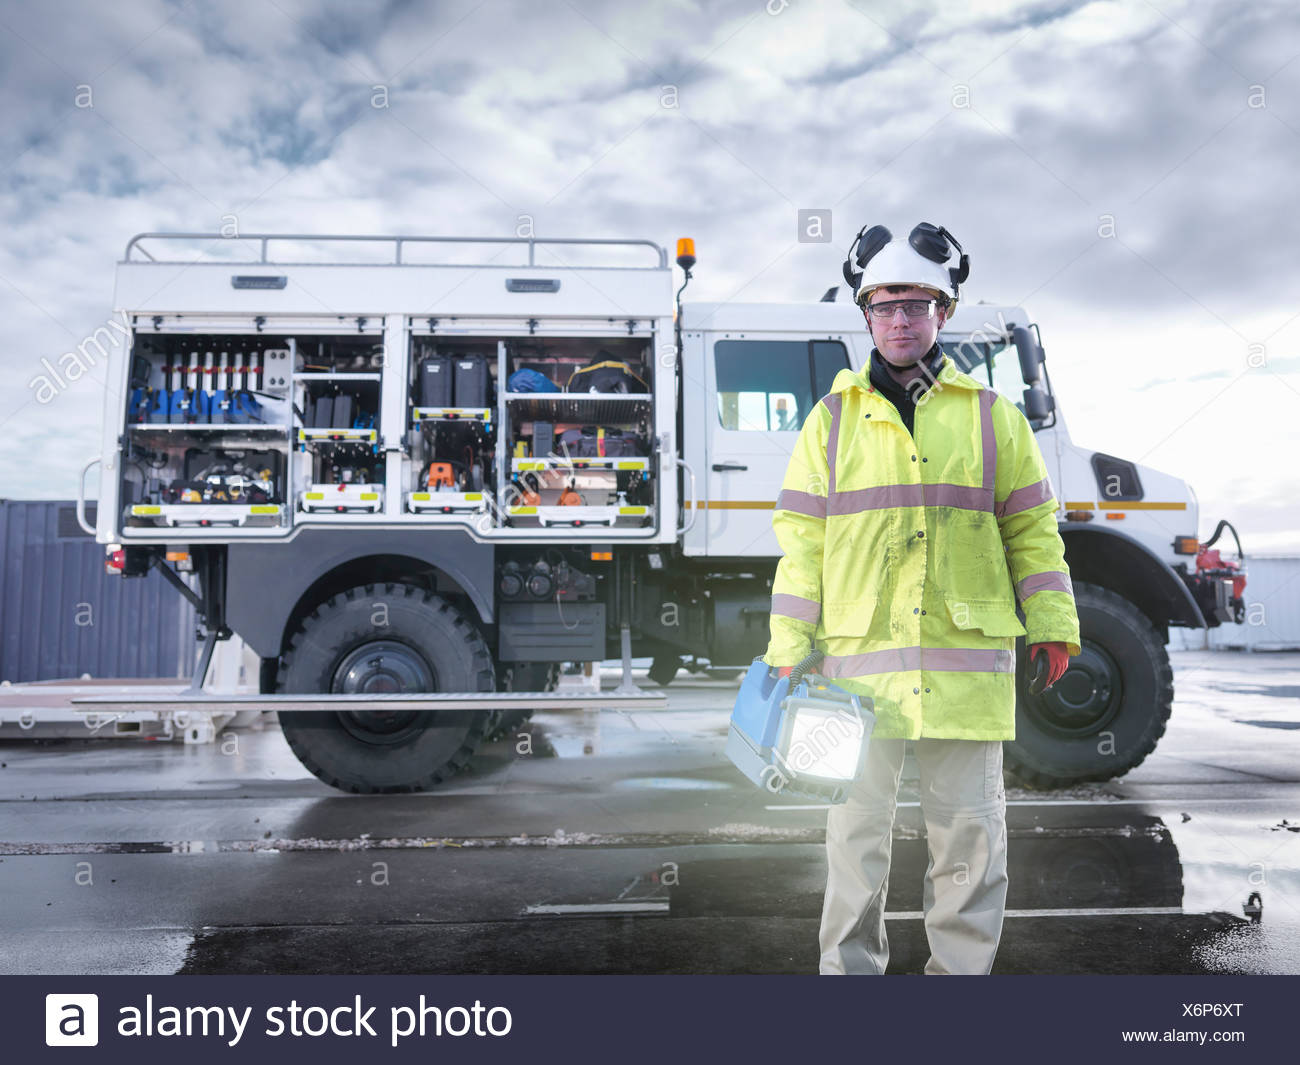 Portrait of Emergency Response worker with specialist equipment and rescue truck - Stock Image